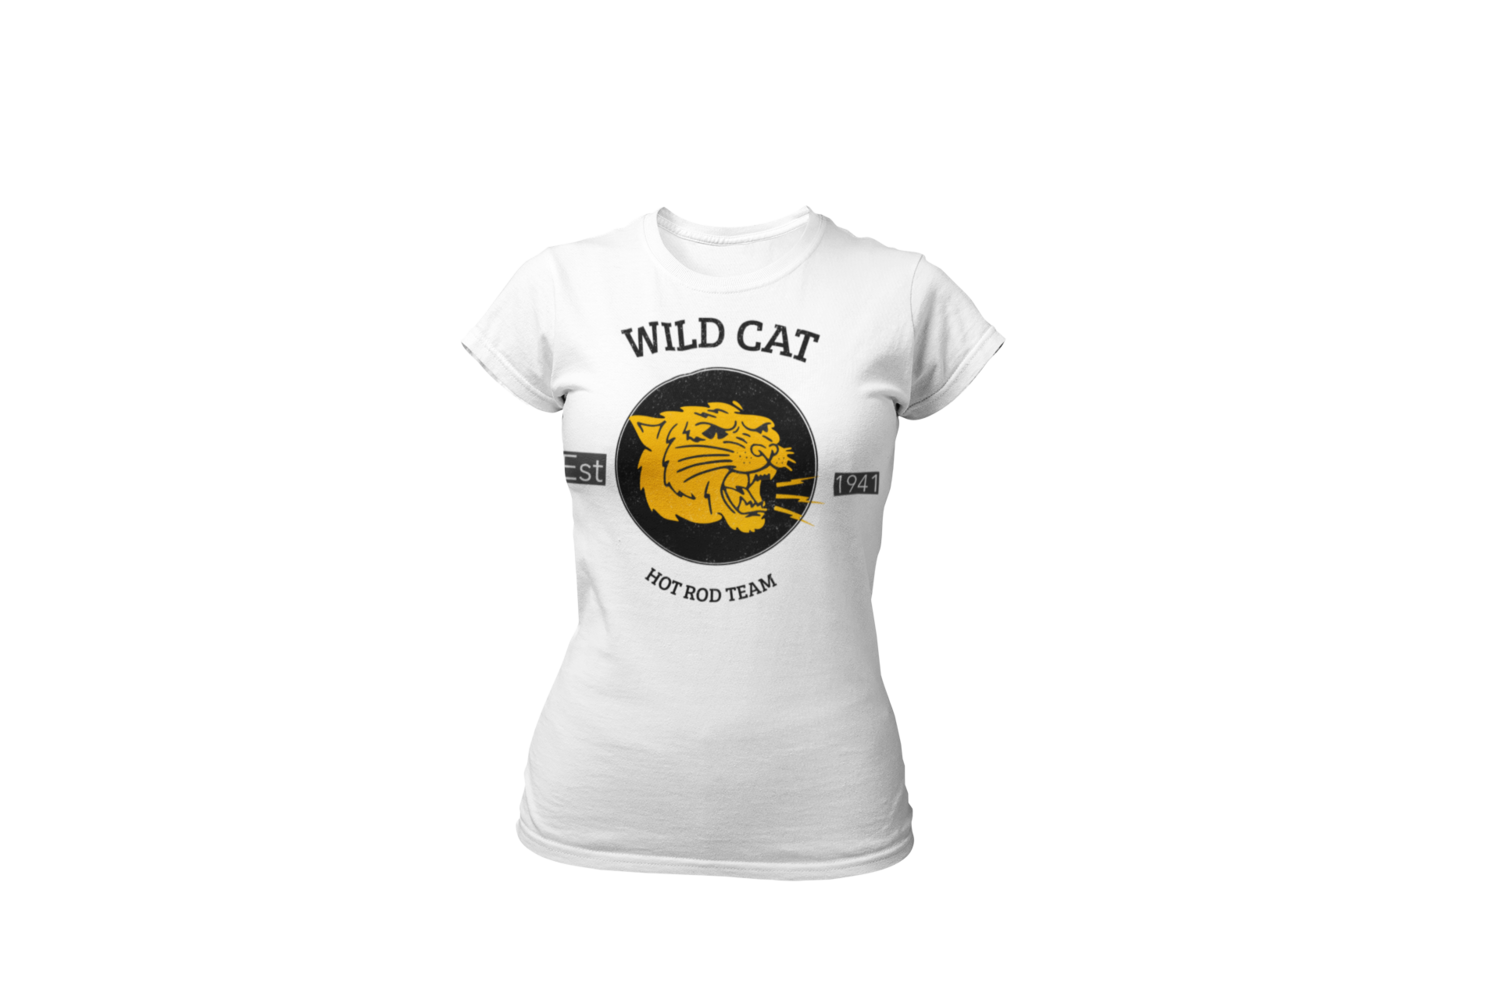 WILD CAT HOT ROD TEAM T-SHIRT FOR WOMEN